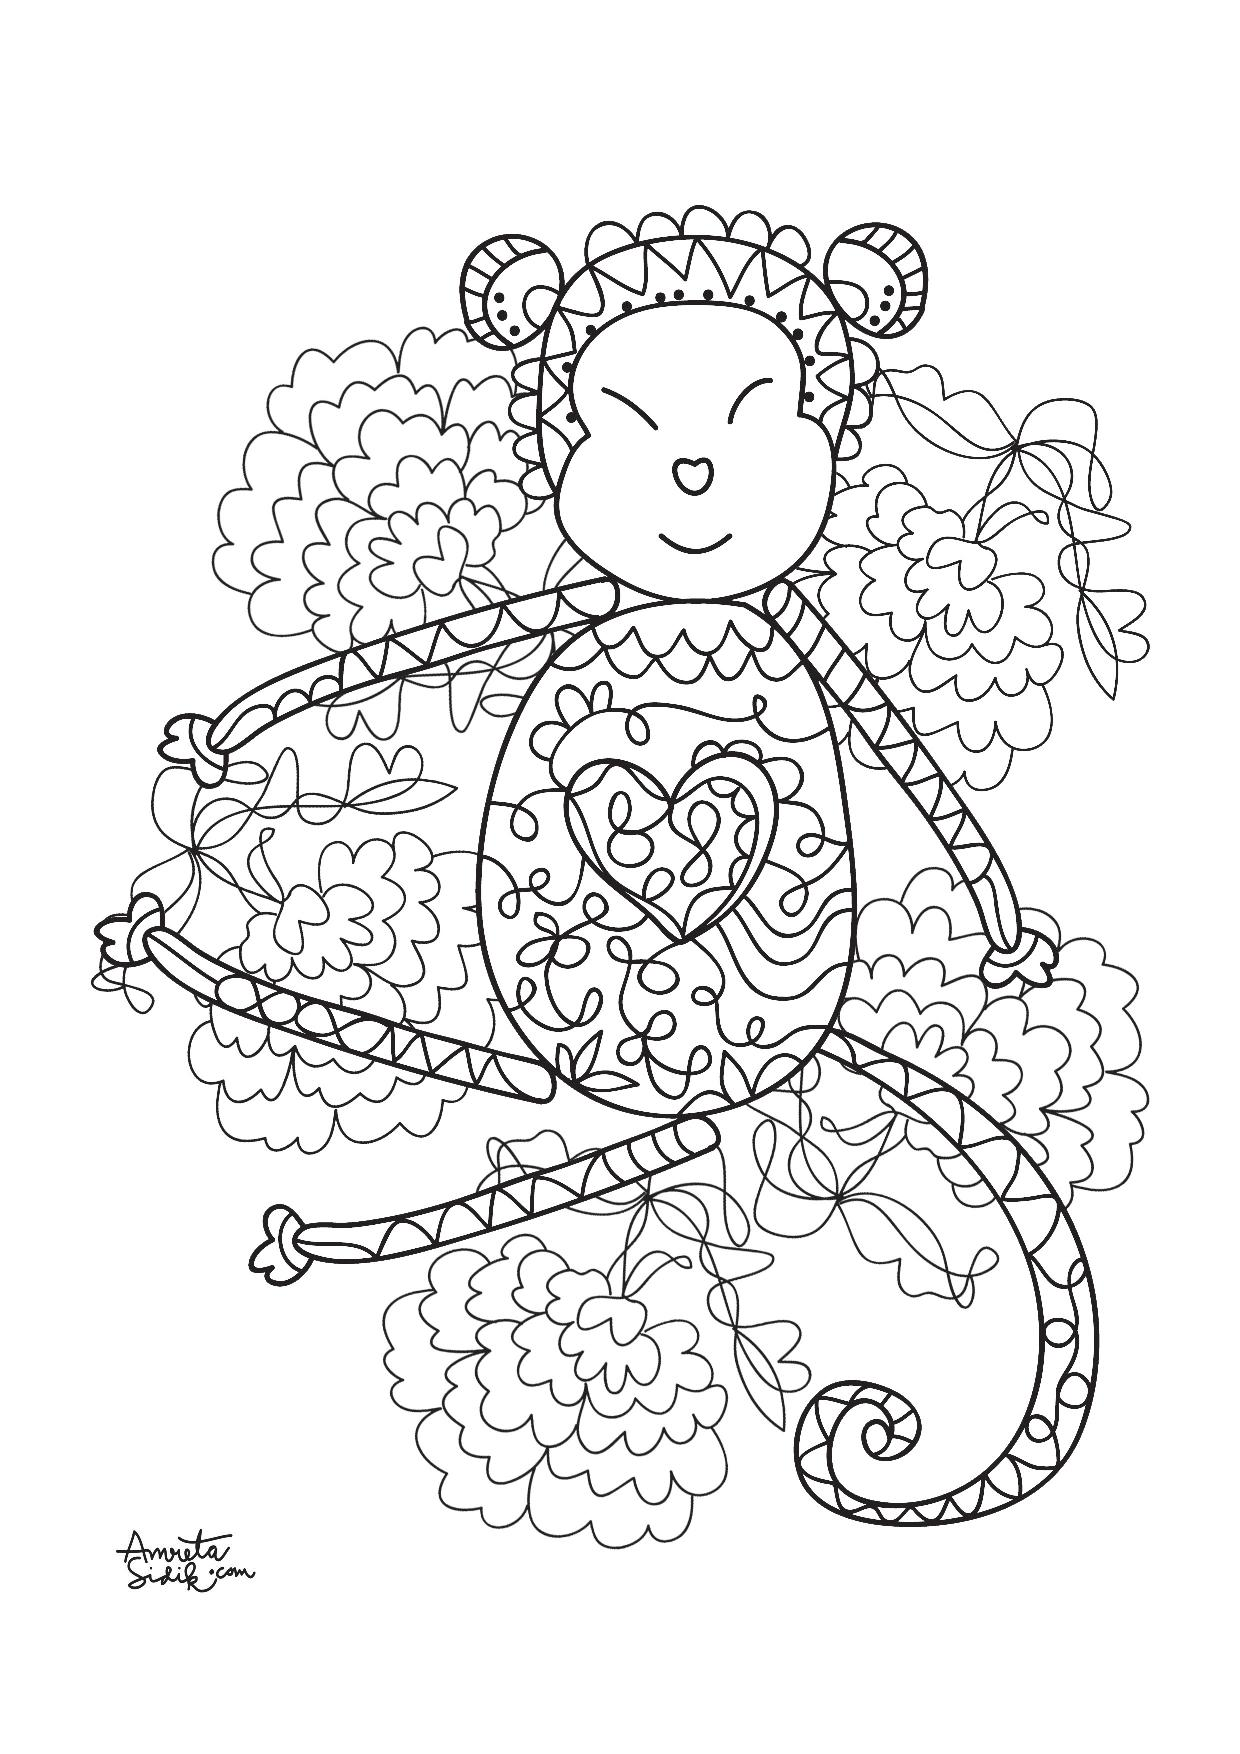 Year Of The Monkey 4 Amreta Sidik Coloring Pages For Adults